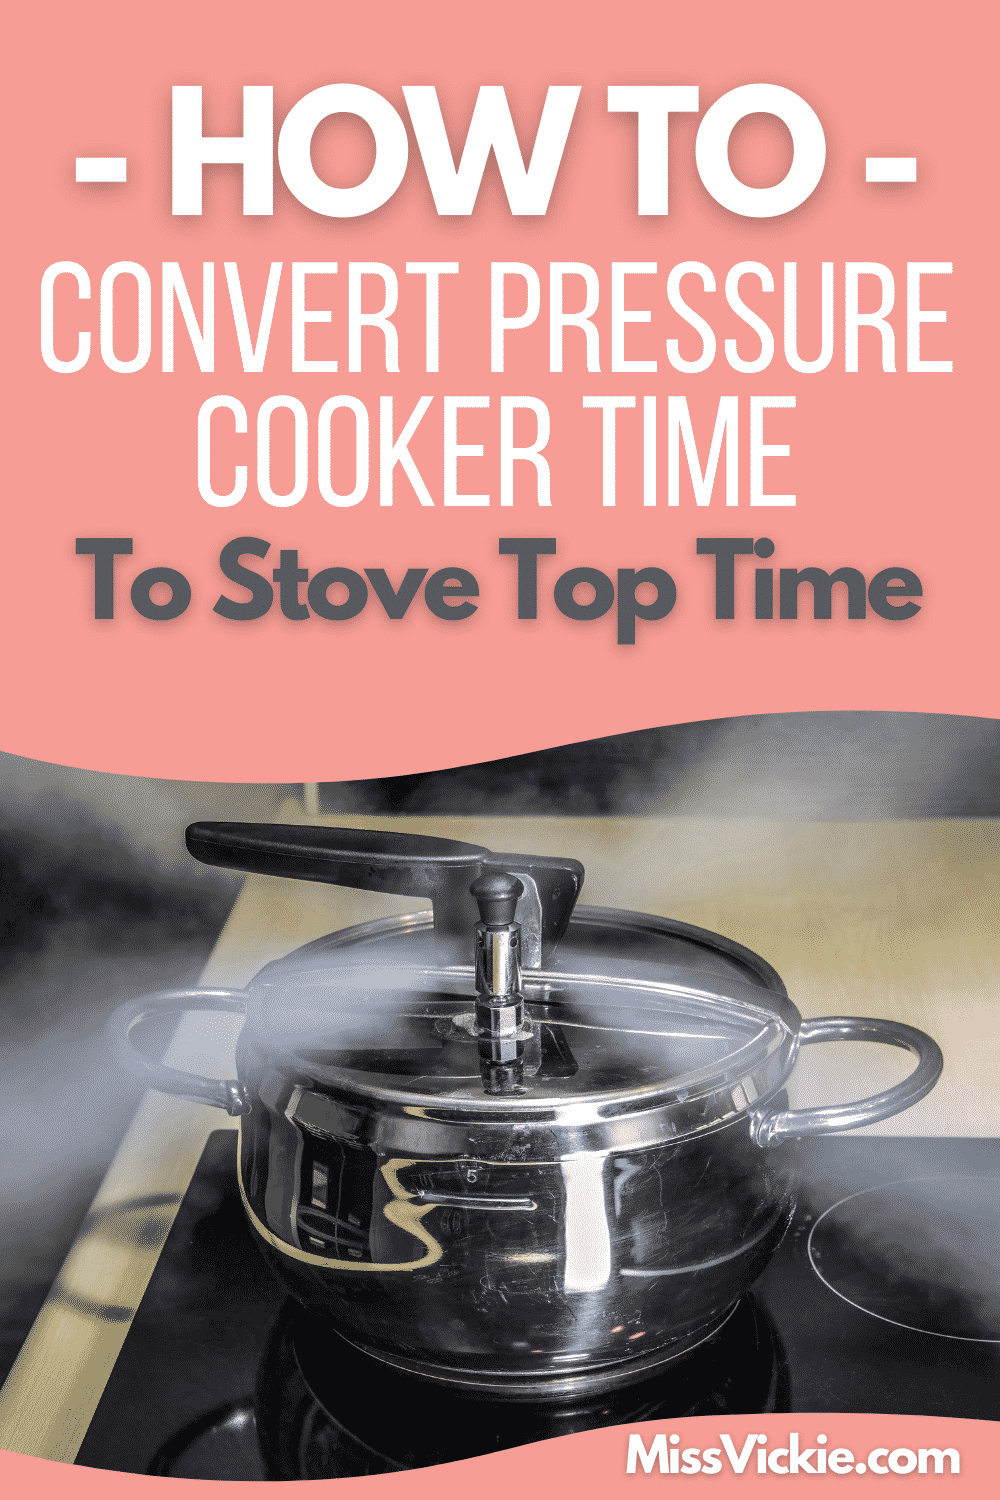 Convert Pressure Cooker Time To Stove Top